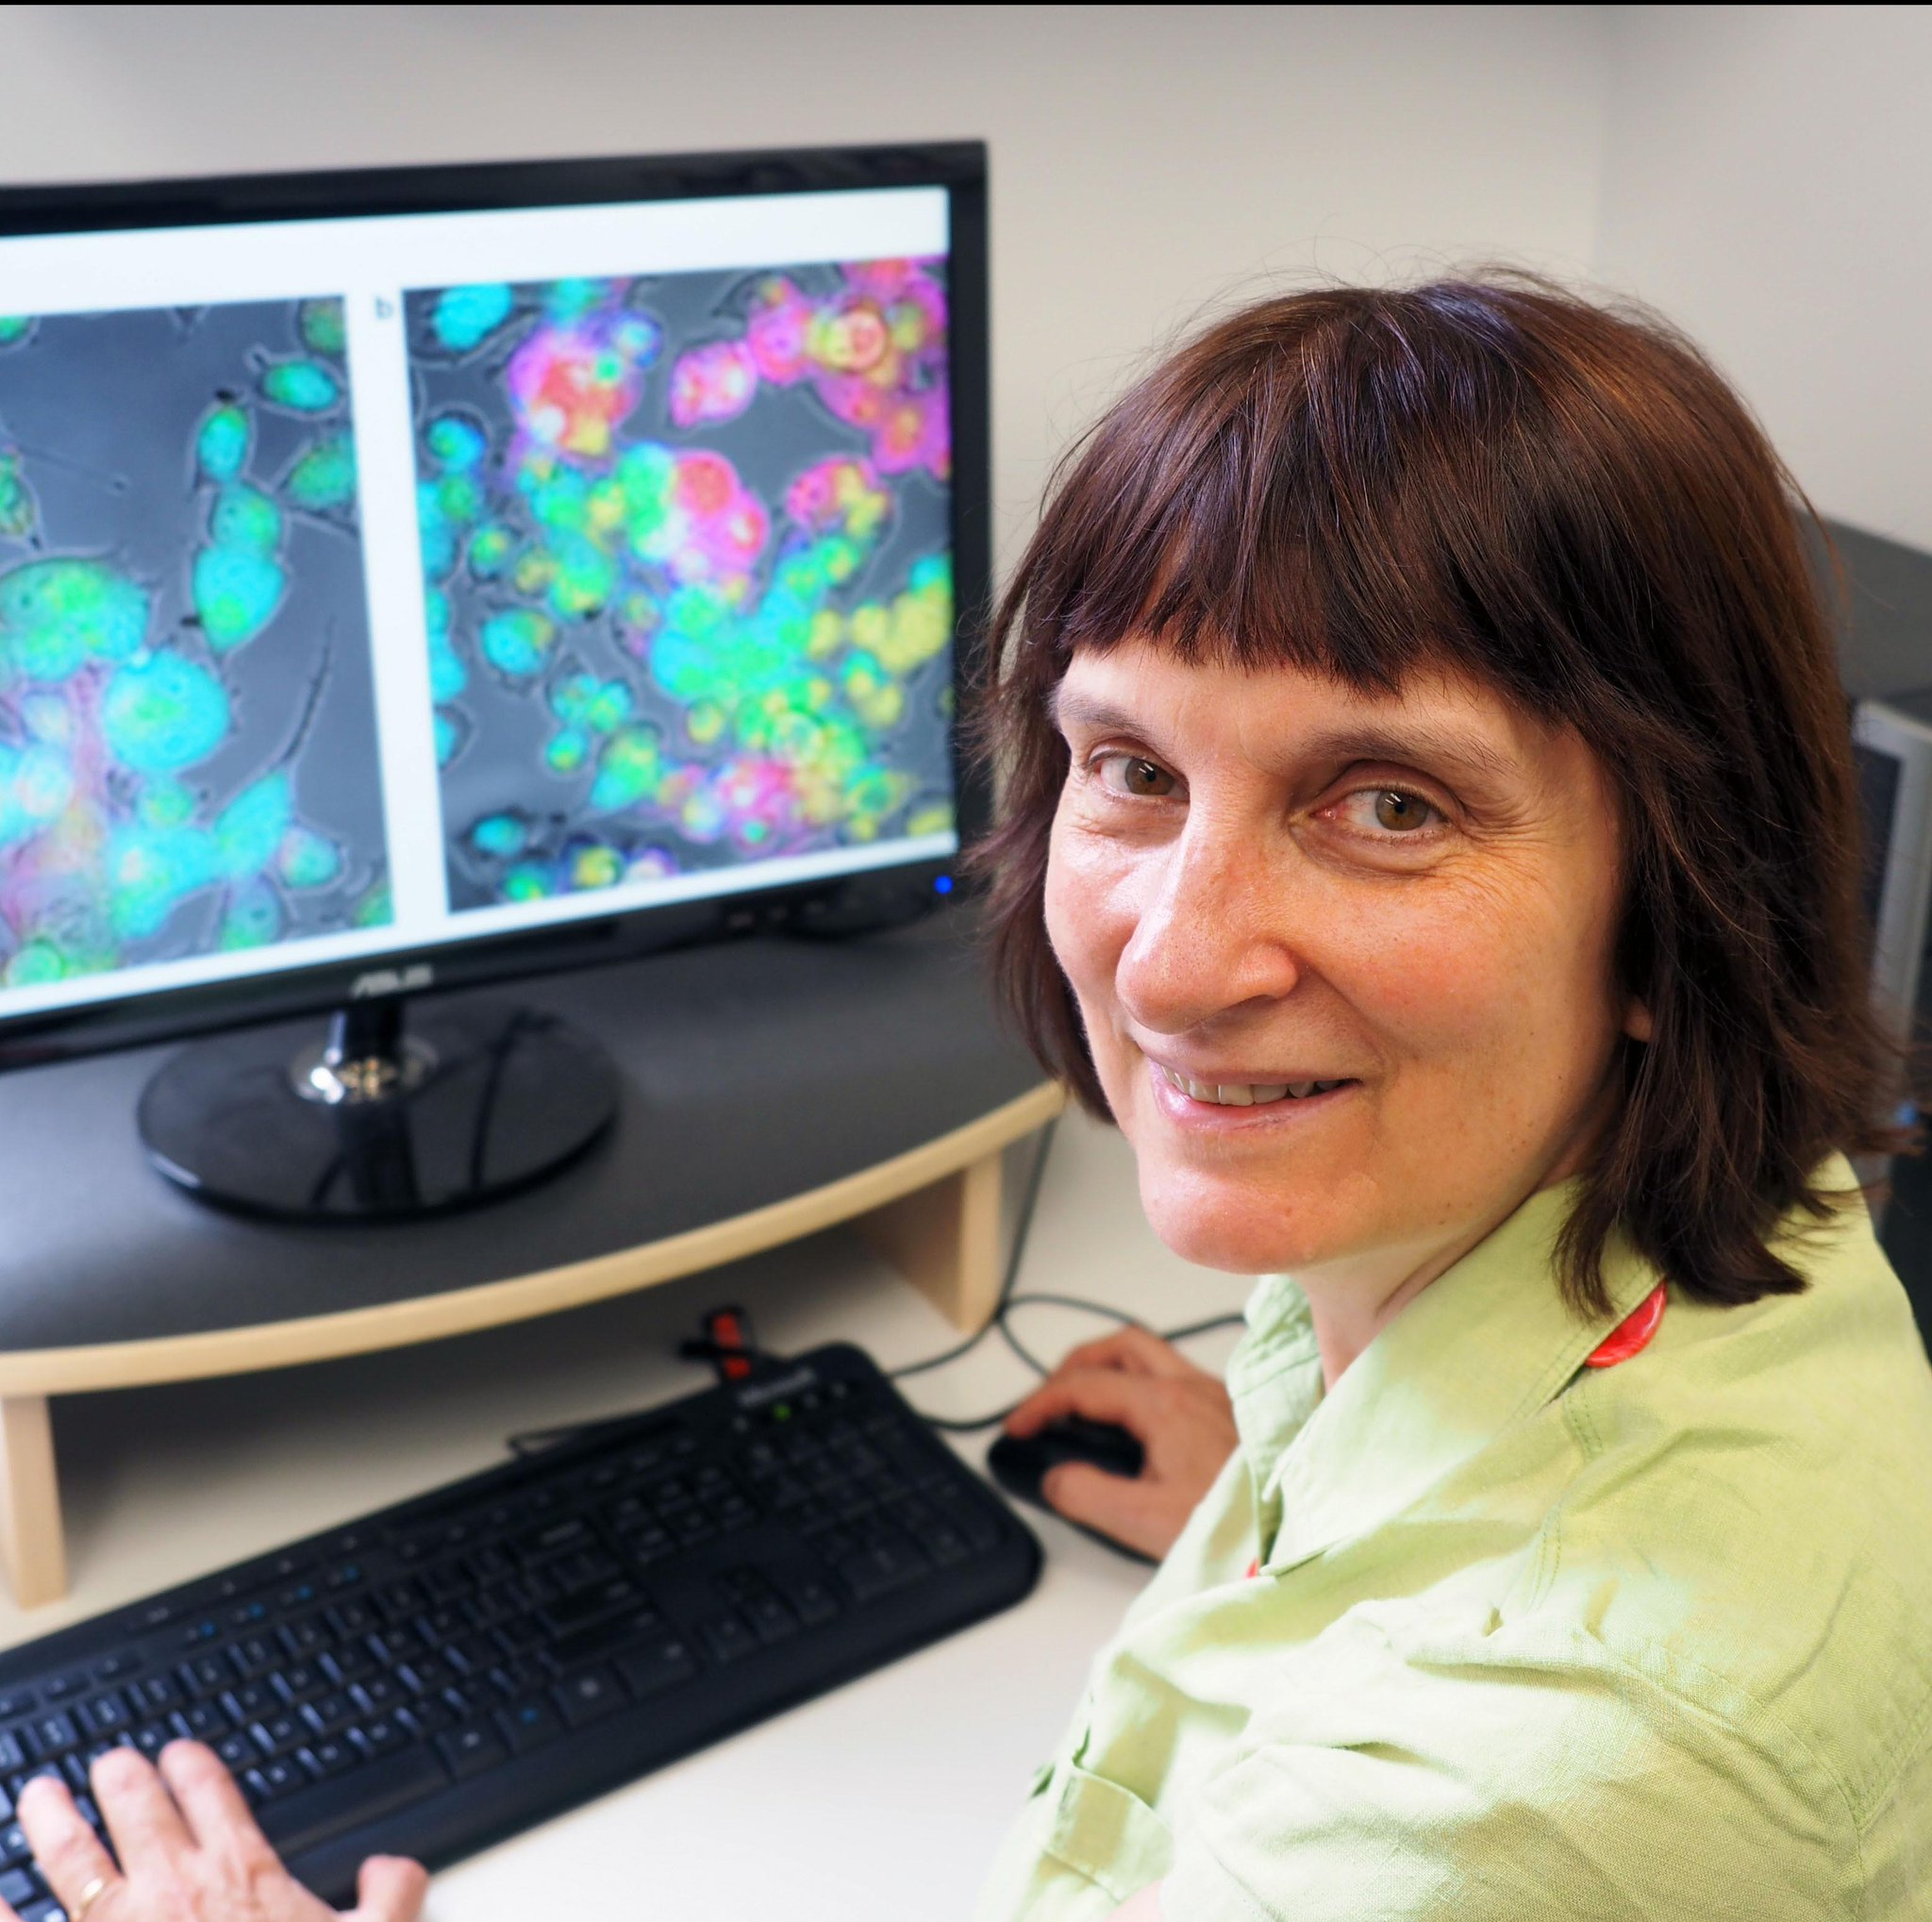 #CNBP's Ewa Goldys & her colour-focused cell science - a public talk @Macquarie_Uni. Tue. Oct 4, 1pm. All welcome. https://t.co/X6YUzxyQL0 https://t.co/KOQkPHAerZ